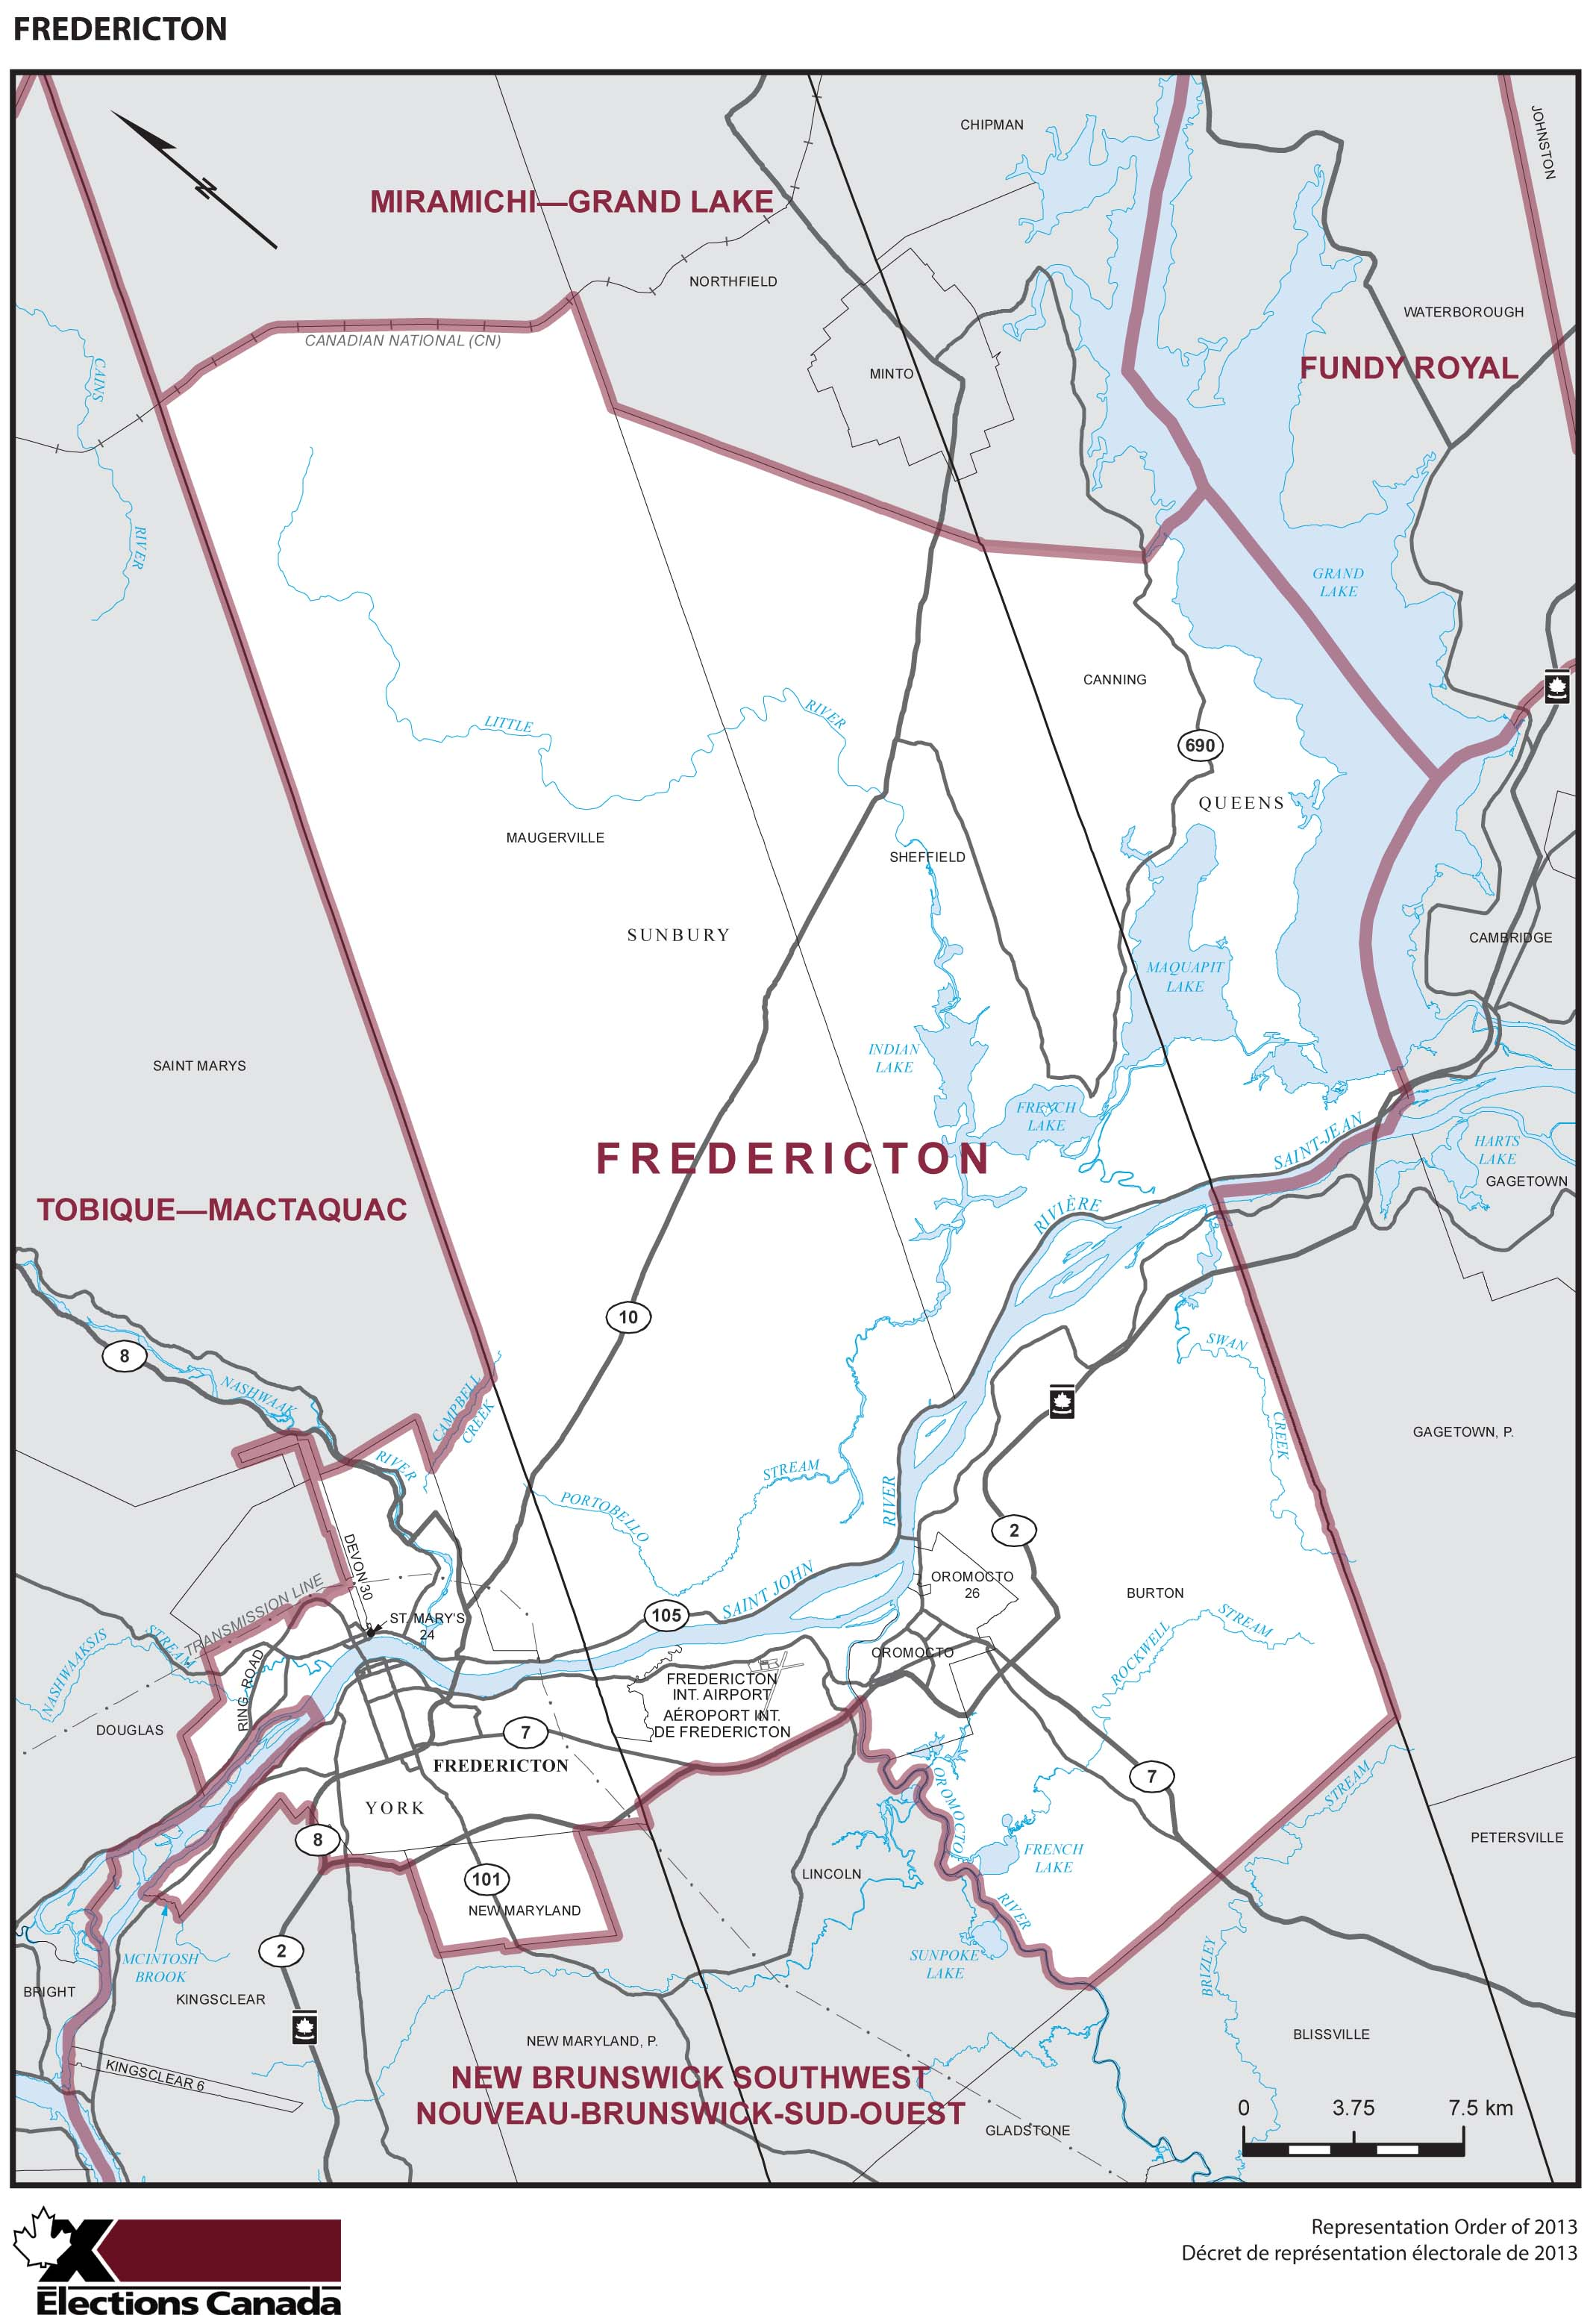 Map: Fredericton, Federal electoral district, 2013 Representation Order (in white), New Brunswick